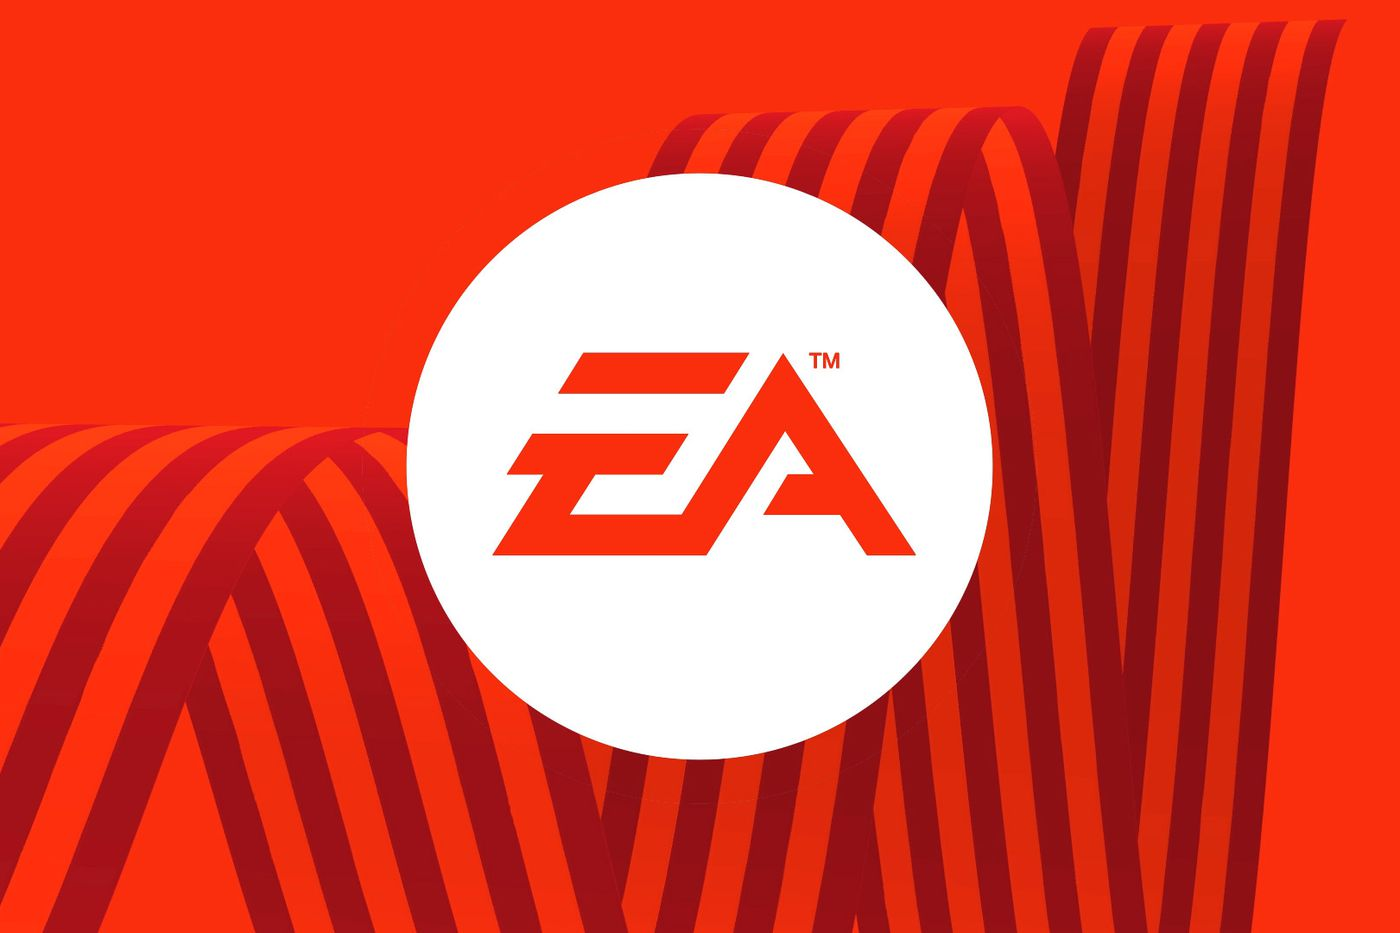 Electronic Arts is planning to acquire Glu Mobile with a deal worth US $ 2.4 billion